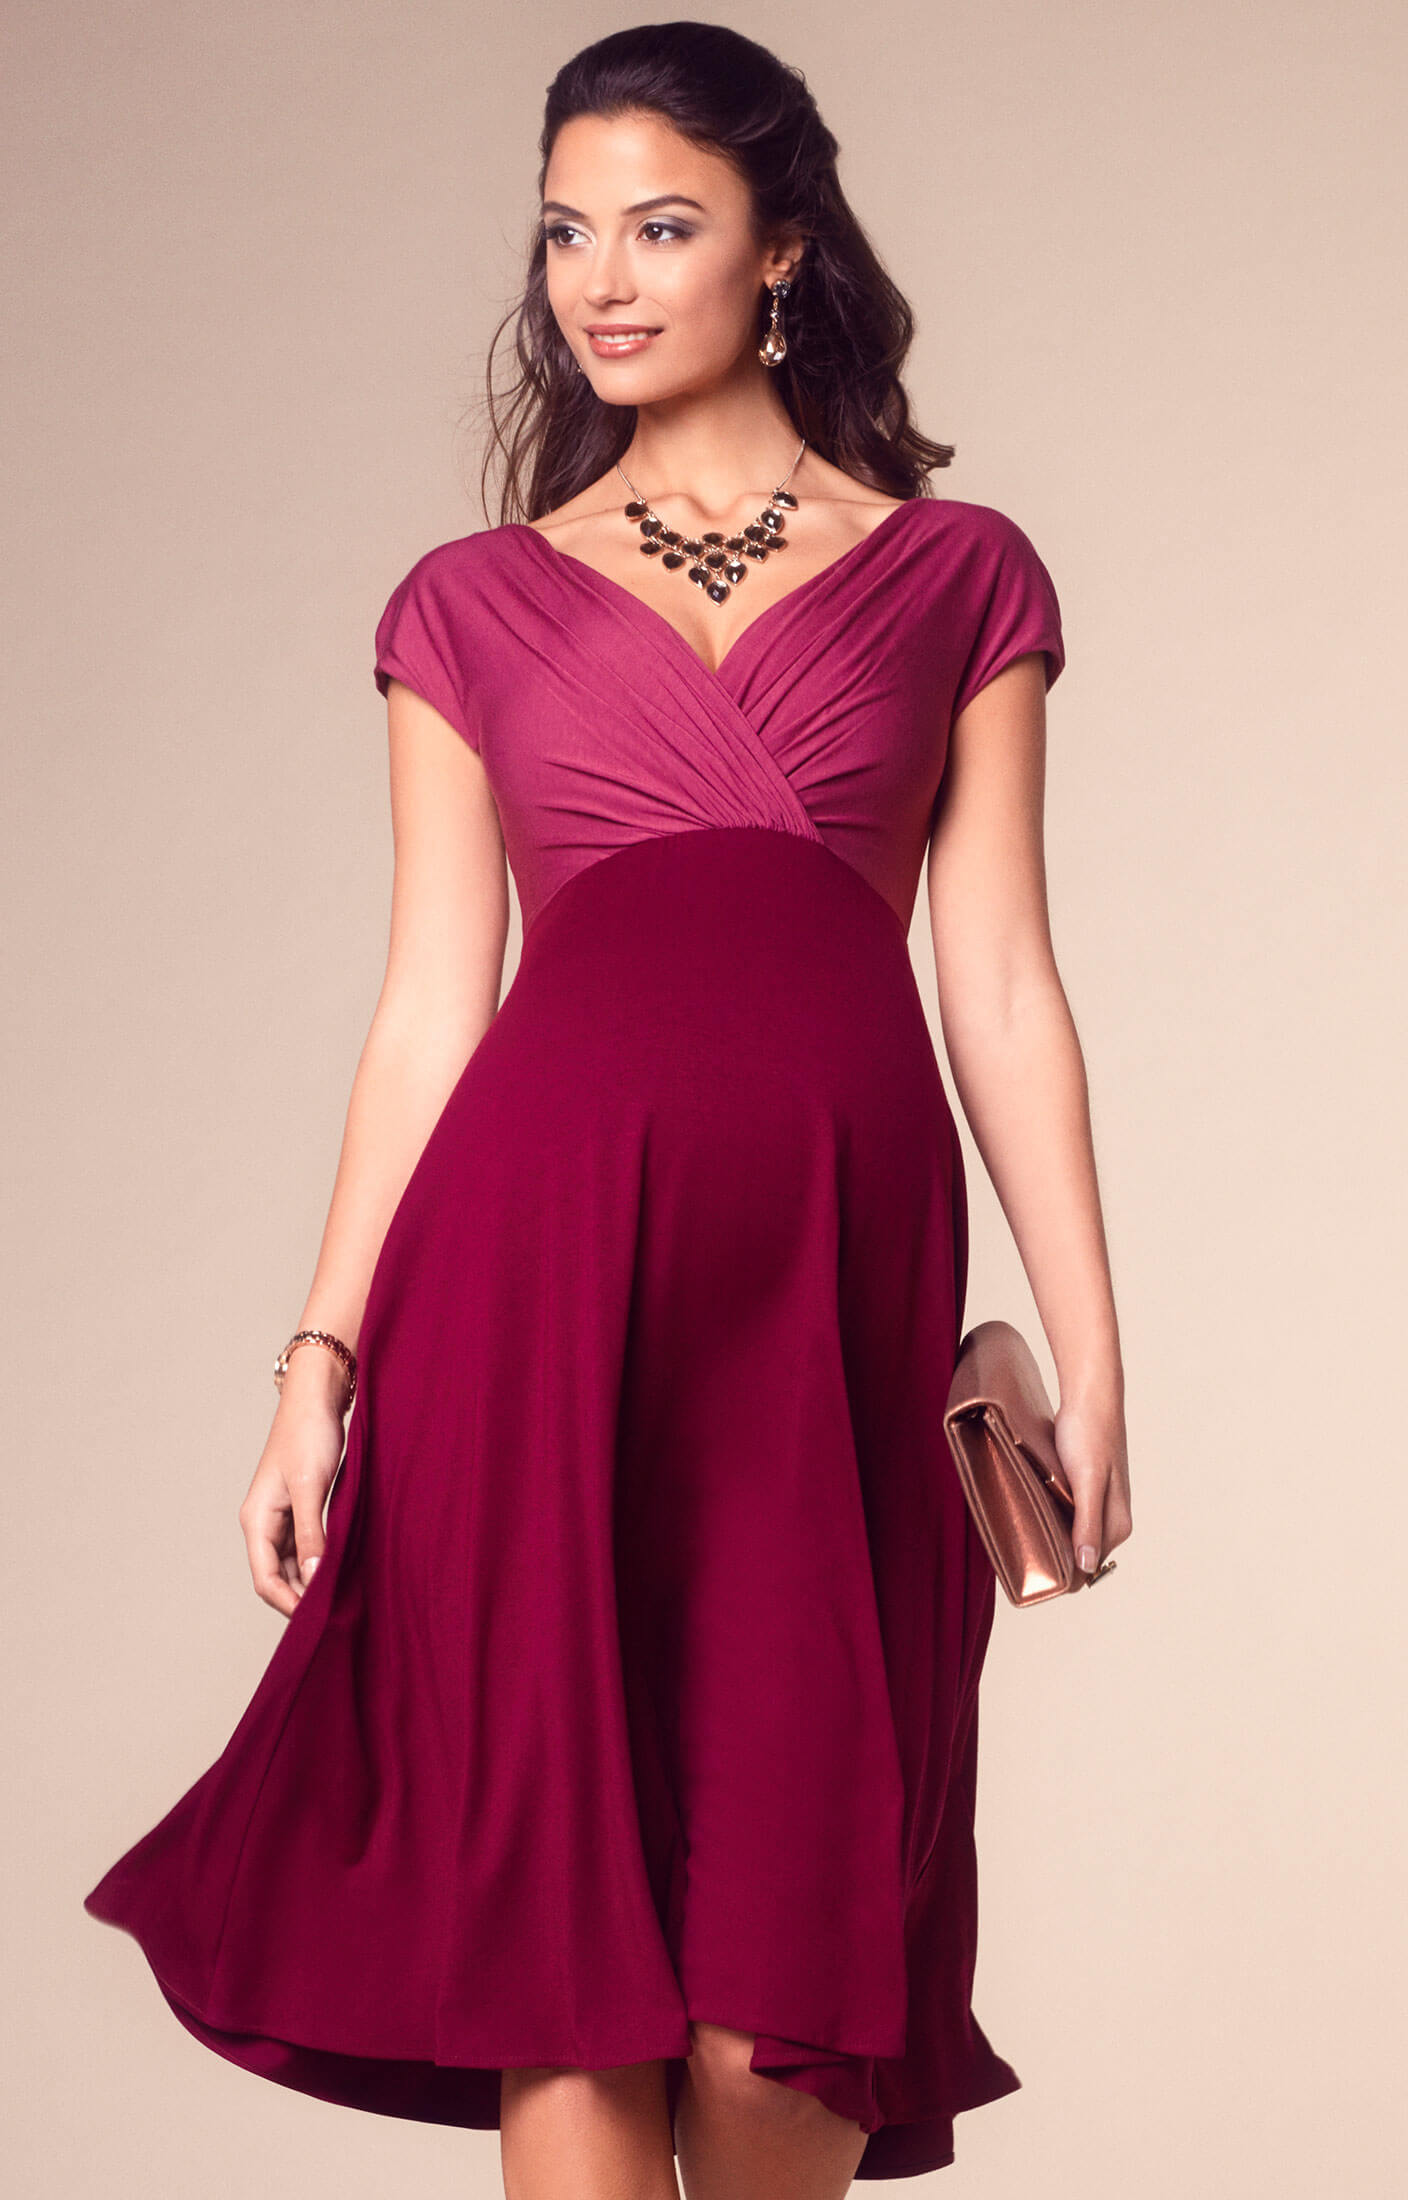 Womens Maternity Clothes Nursing Skater Dress Long Sleeve Casual Evening Dresses. Brand New. $ Buy It Now. Free Shipping. US Long Maxi Party Dresses Dark Purple Maternity Evening Gown Ever-Pretty See more like this. New Olian Maternity Black Velvet & Taffeta Formal Gown Evening Dress S 2/4 M 6/8. Brand New.